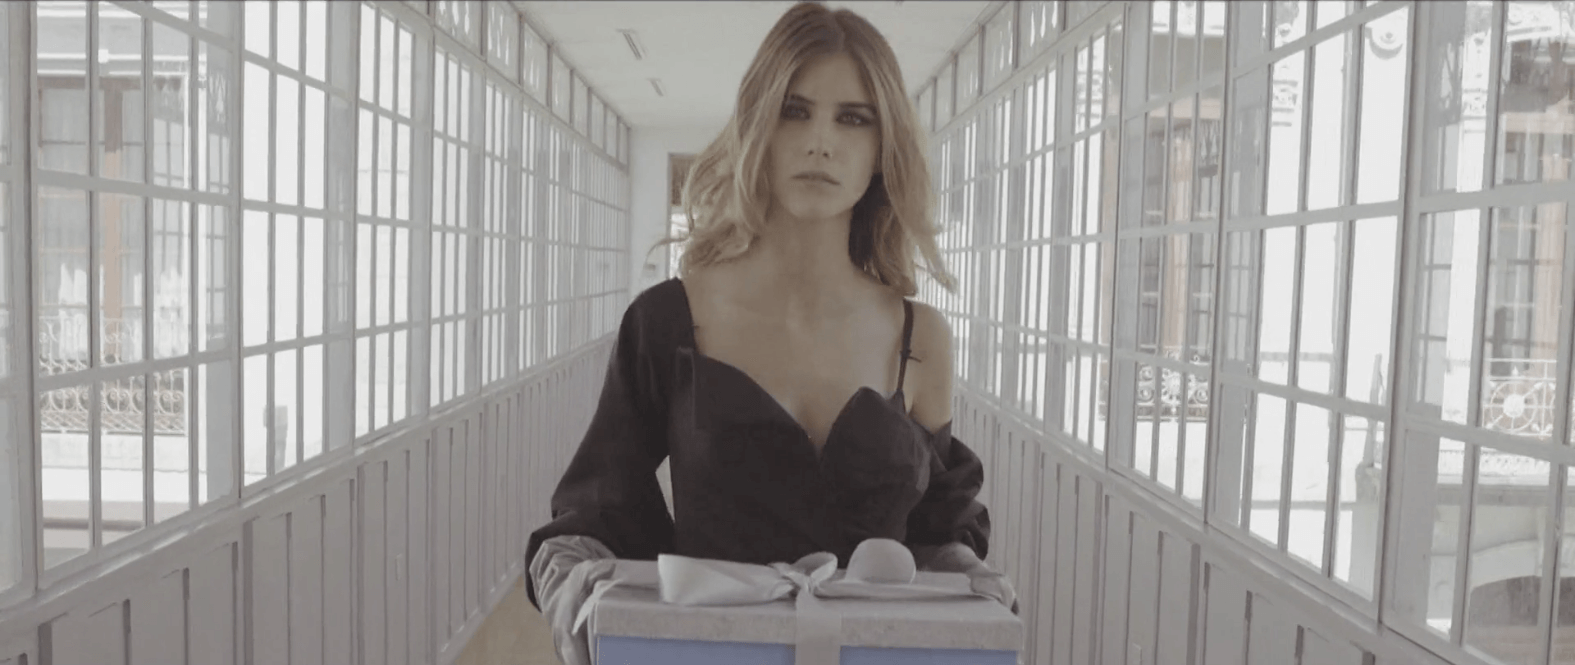 Noah Pharrell - Desire as Keyword - Vanidad